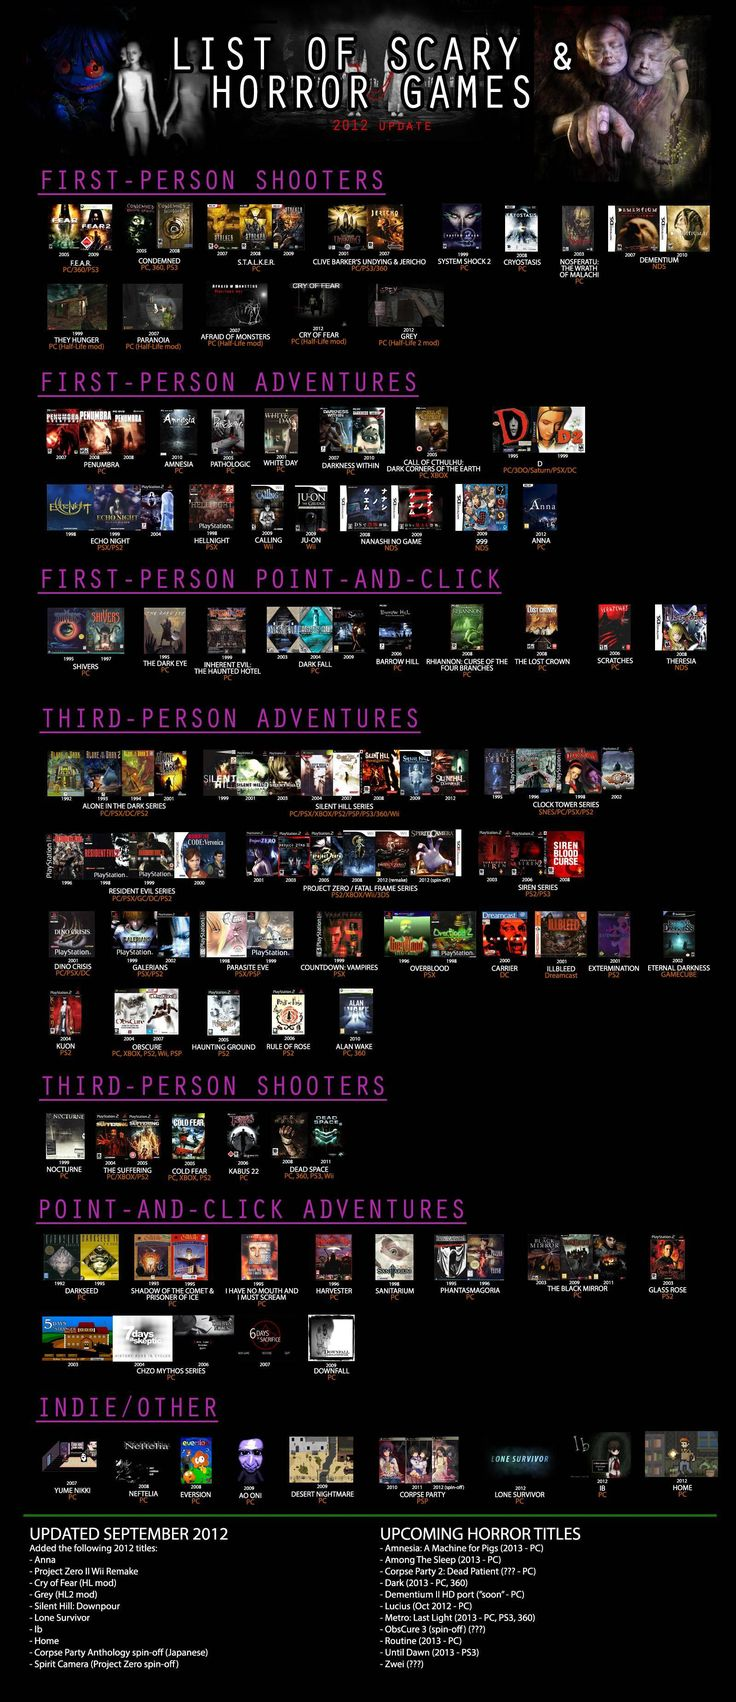 List of Scary & Horror Games